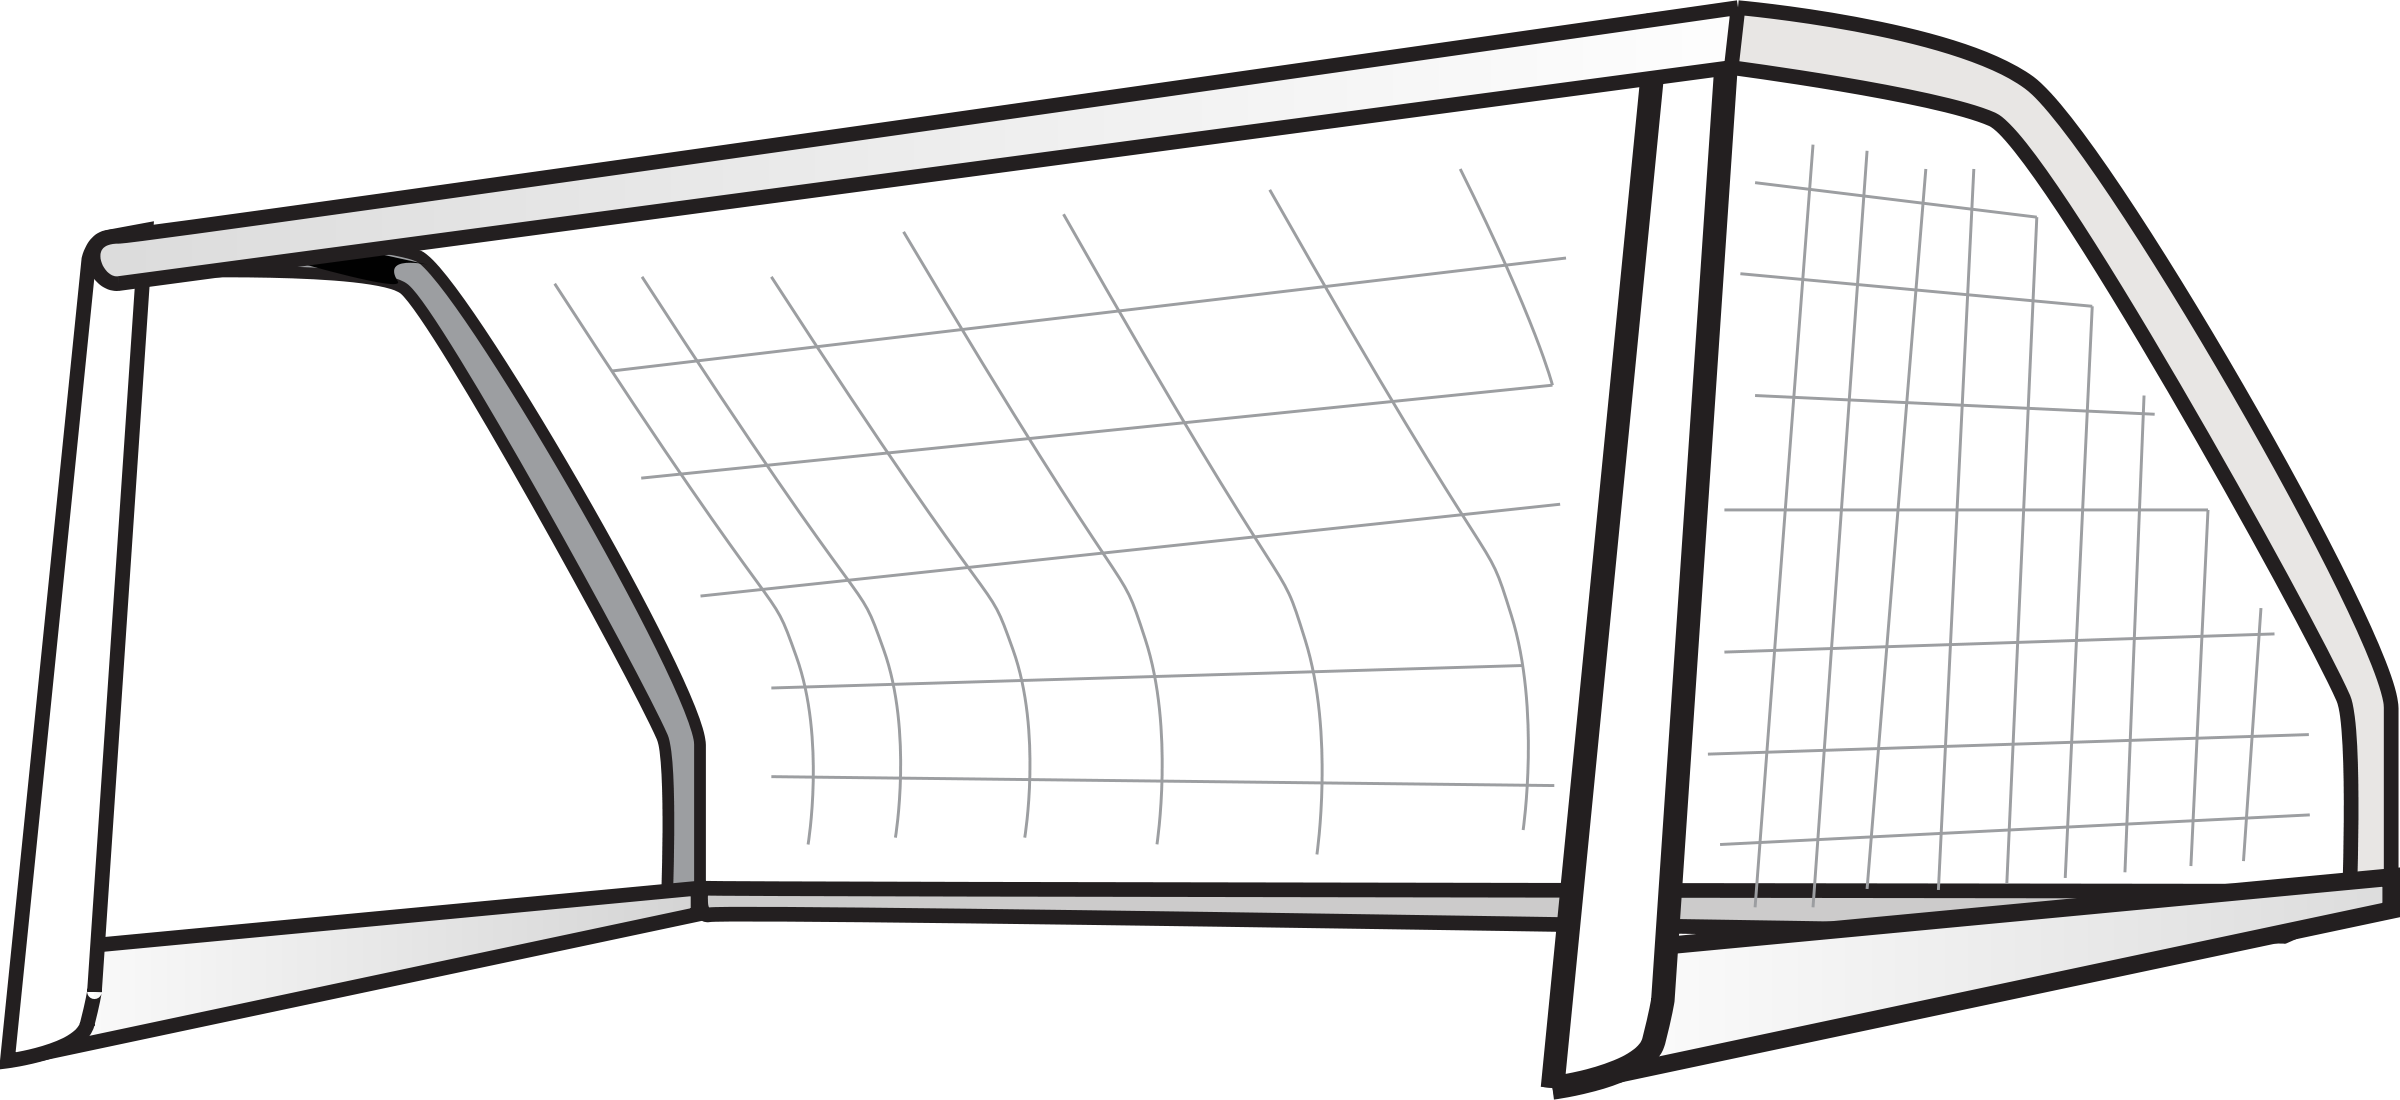 Gate clipart soccer Panda Free Images Clipart Clipart